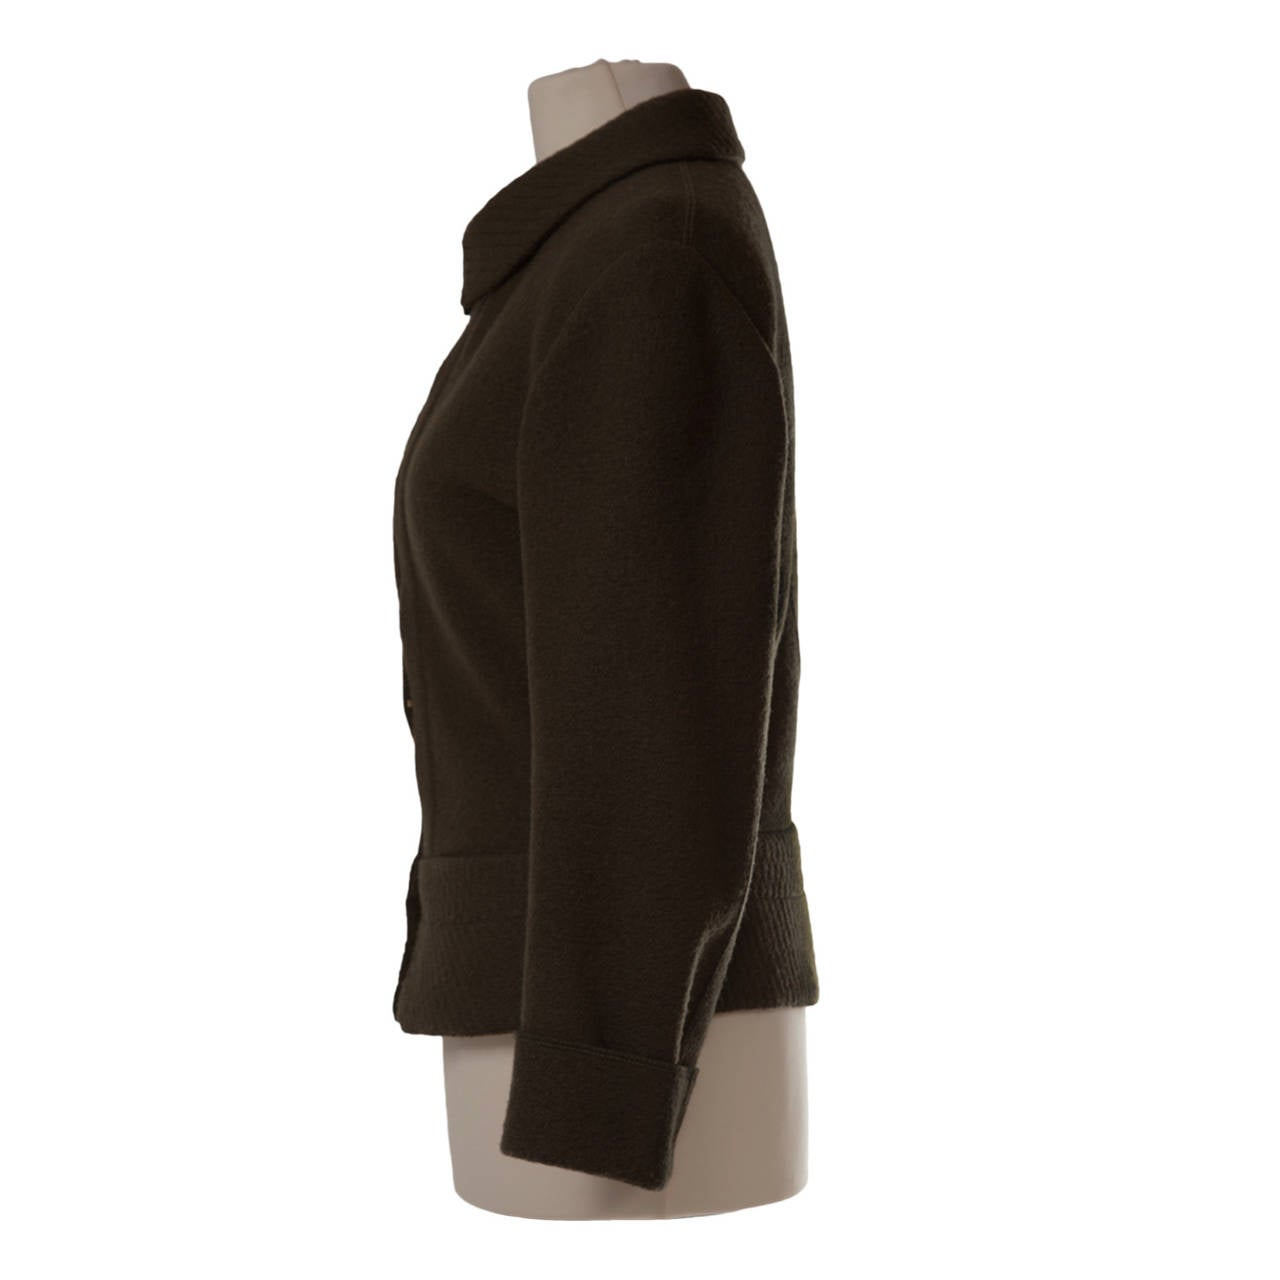 Azzedine Alaia deep khaki wool curved Jacket from 1980's.